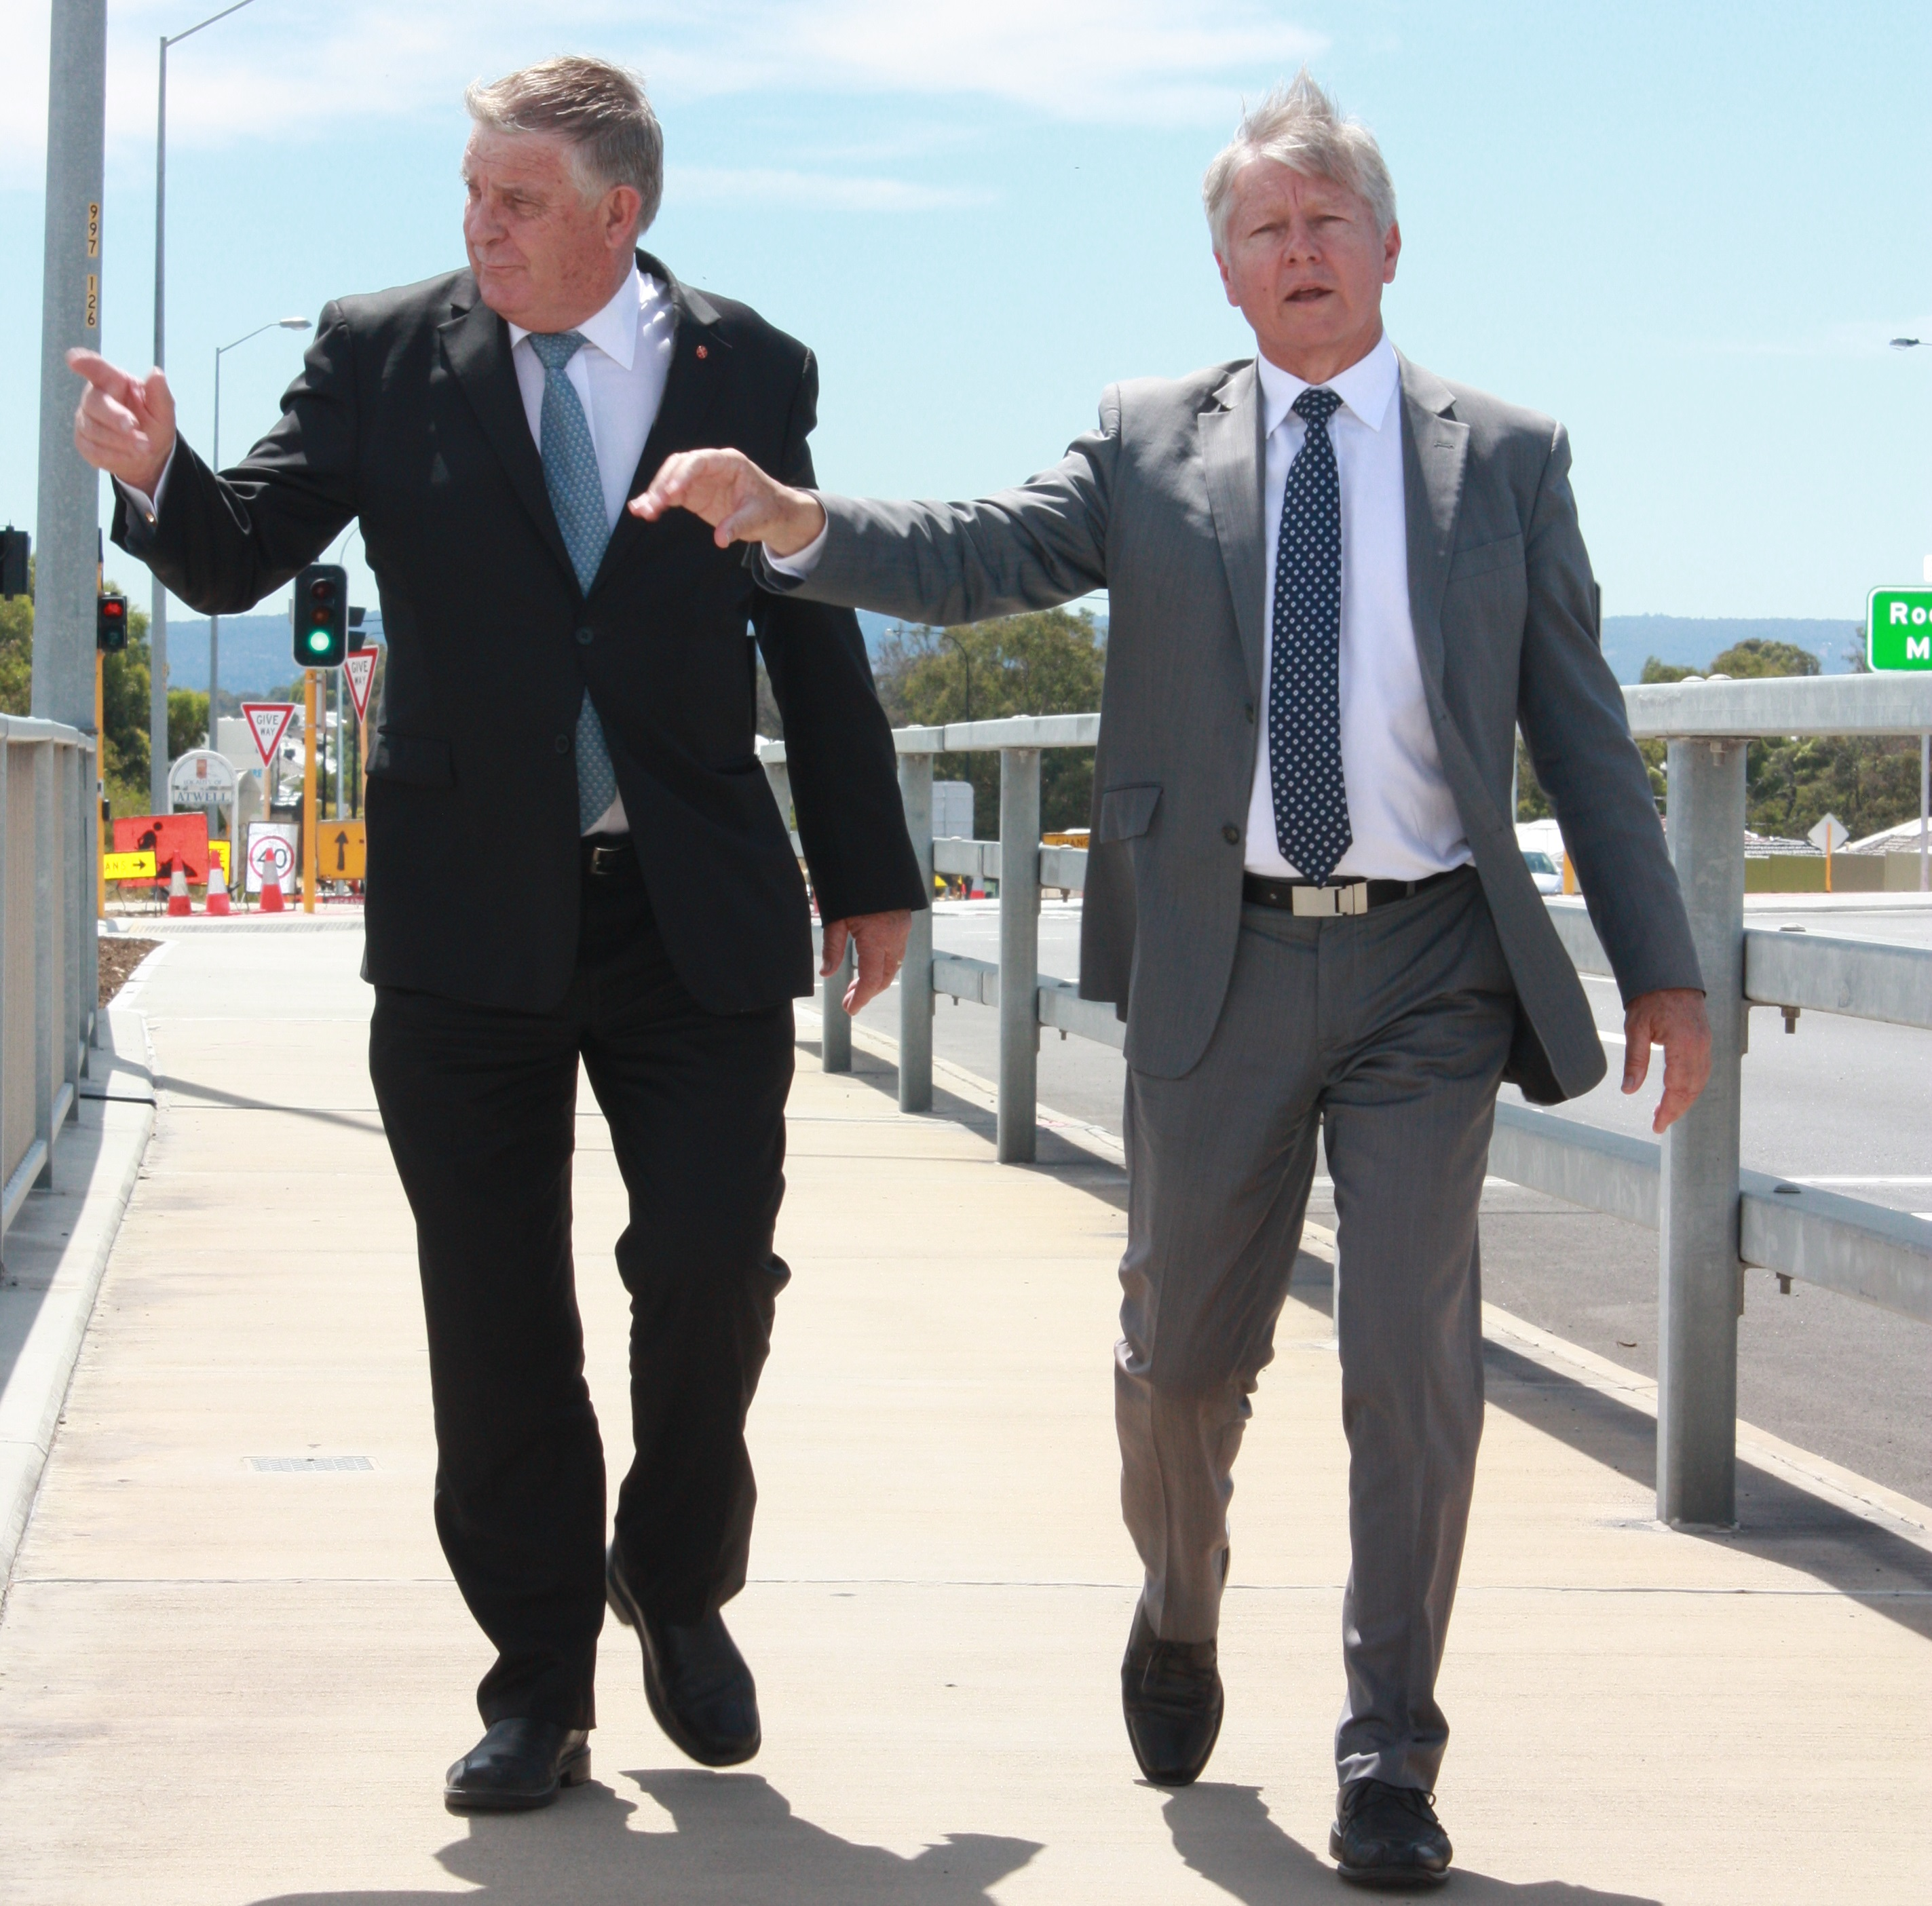 Senator Back and Transport Minister Bill Marmion inspect the new freeway upgrades.